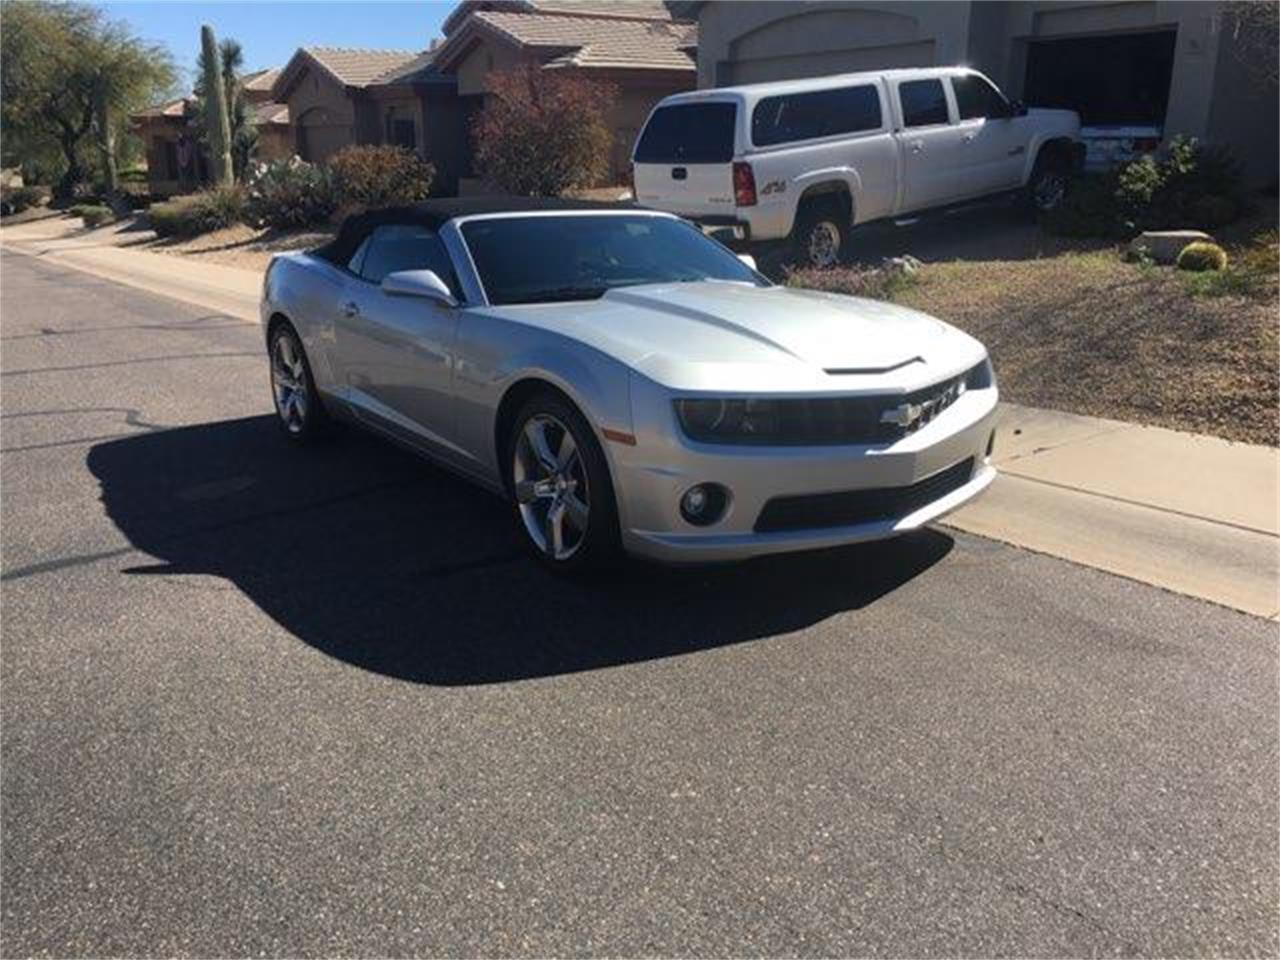 Large Picture of '11 Chevrolet Camaro SS located in Fountain Hills Arizona - $22,000.00 - PH18